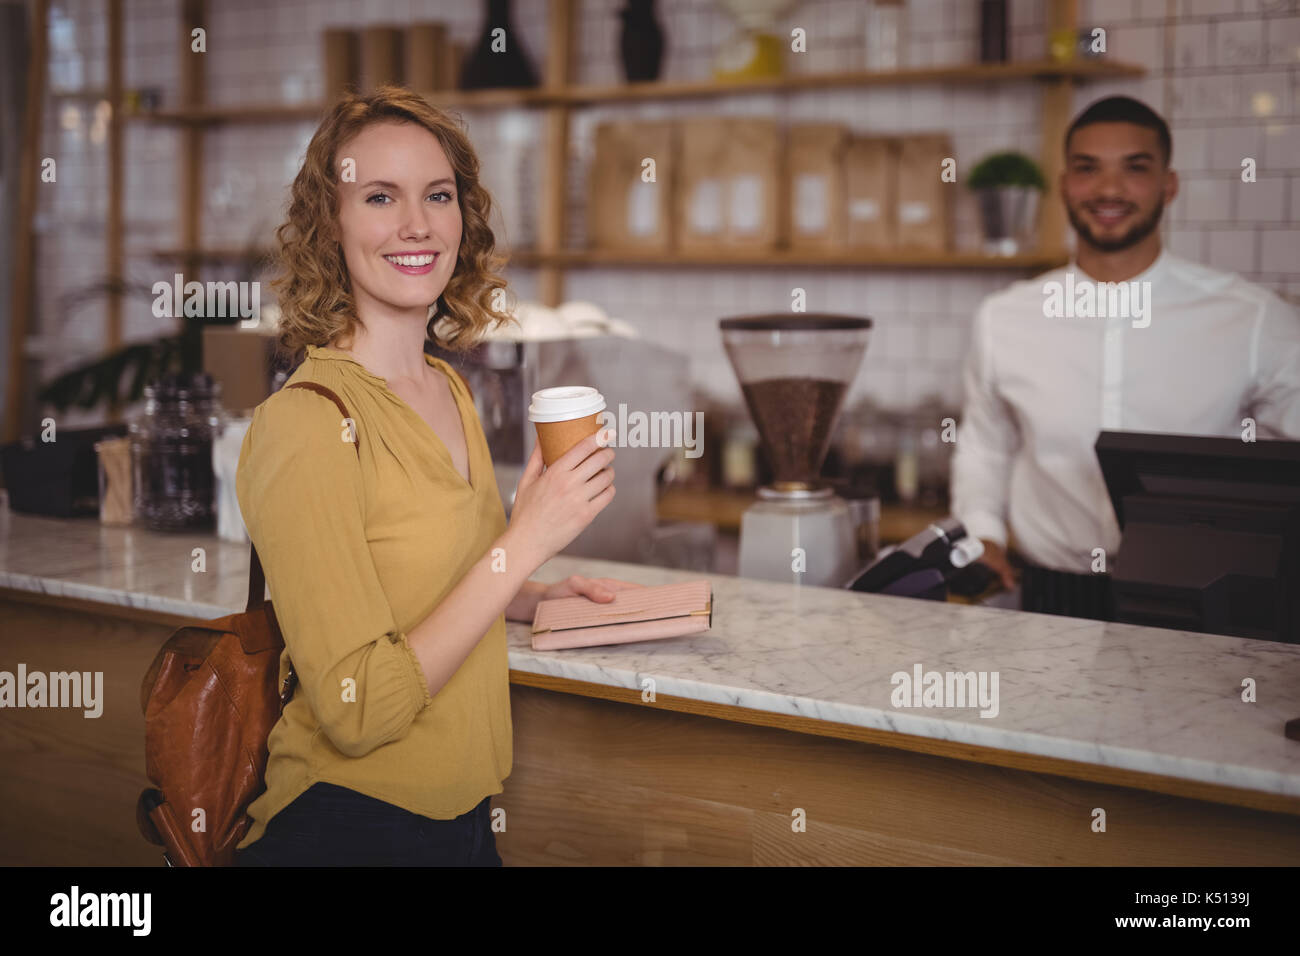 Portrait of smiling young female customer holding disposable coffee cup at counter against waiter in cafeteria - Stock Image